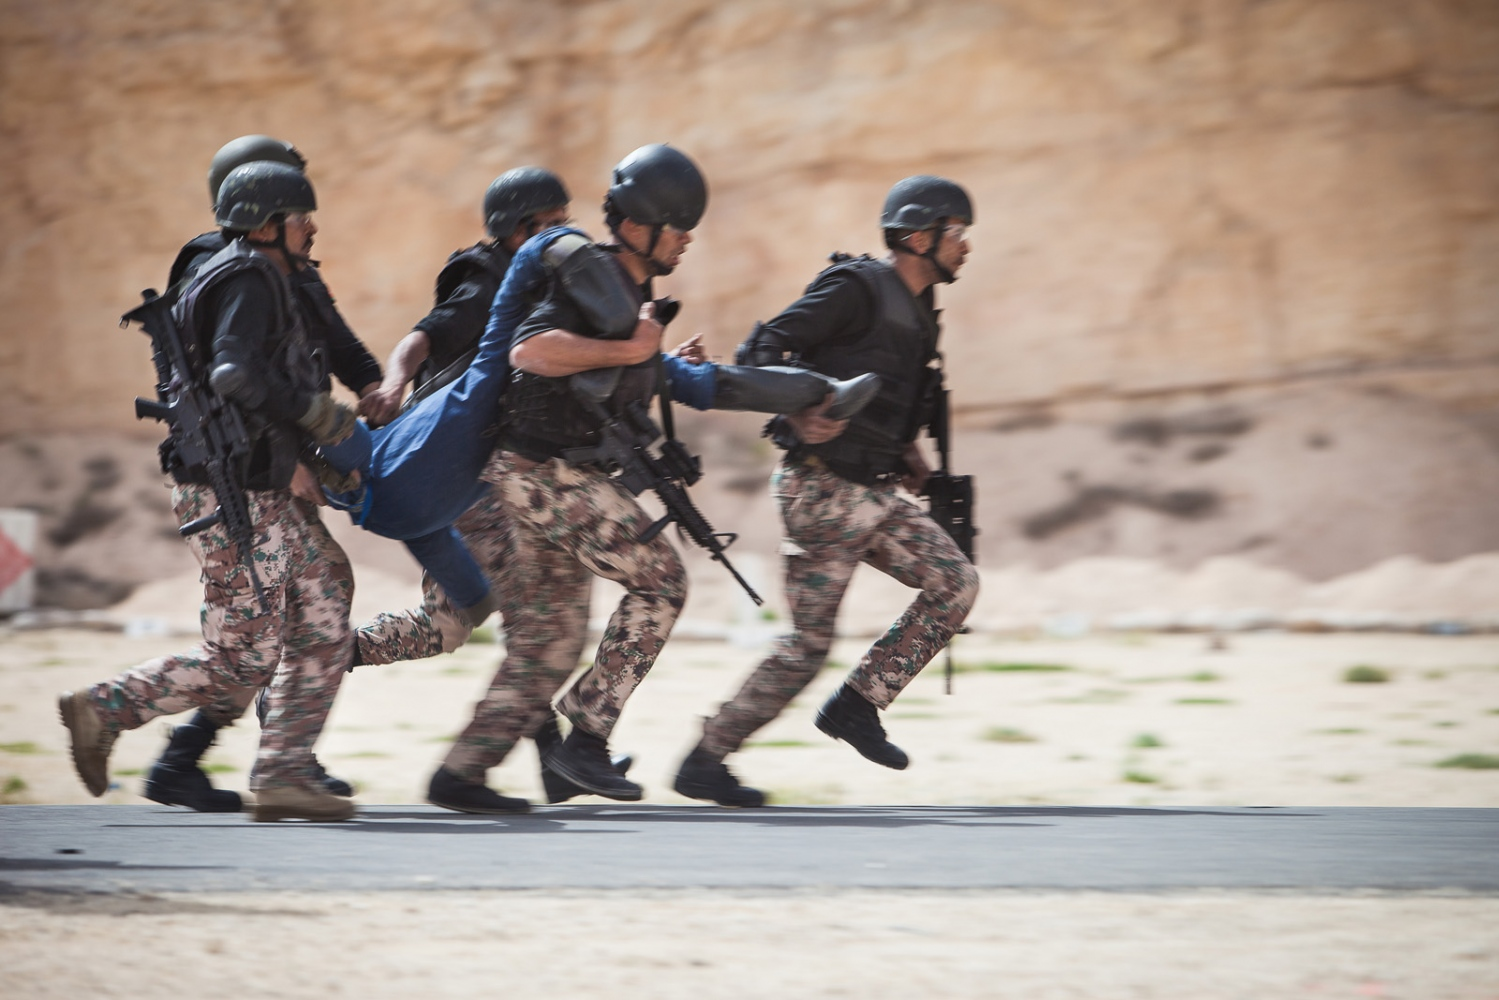 The Jordan team participates in the hostage rescue exercise at the seventh annual Warrior Competition at the King Abdullah II Special Operations Training Center near Amman, Jordan, on April 20, 2015.